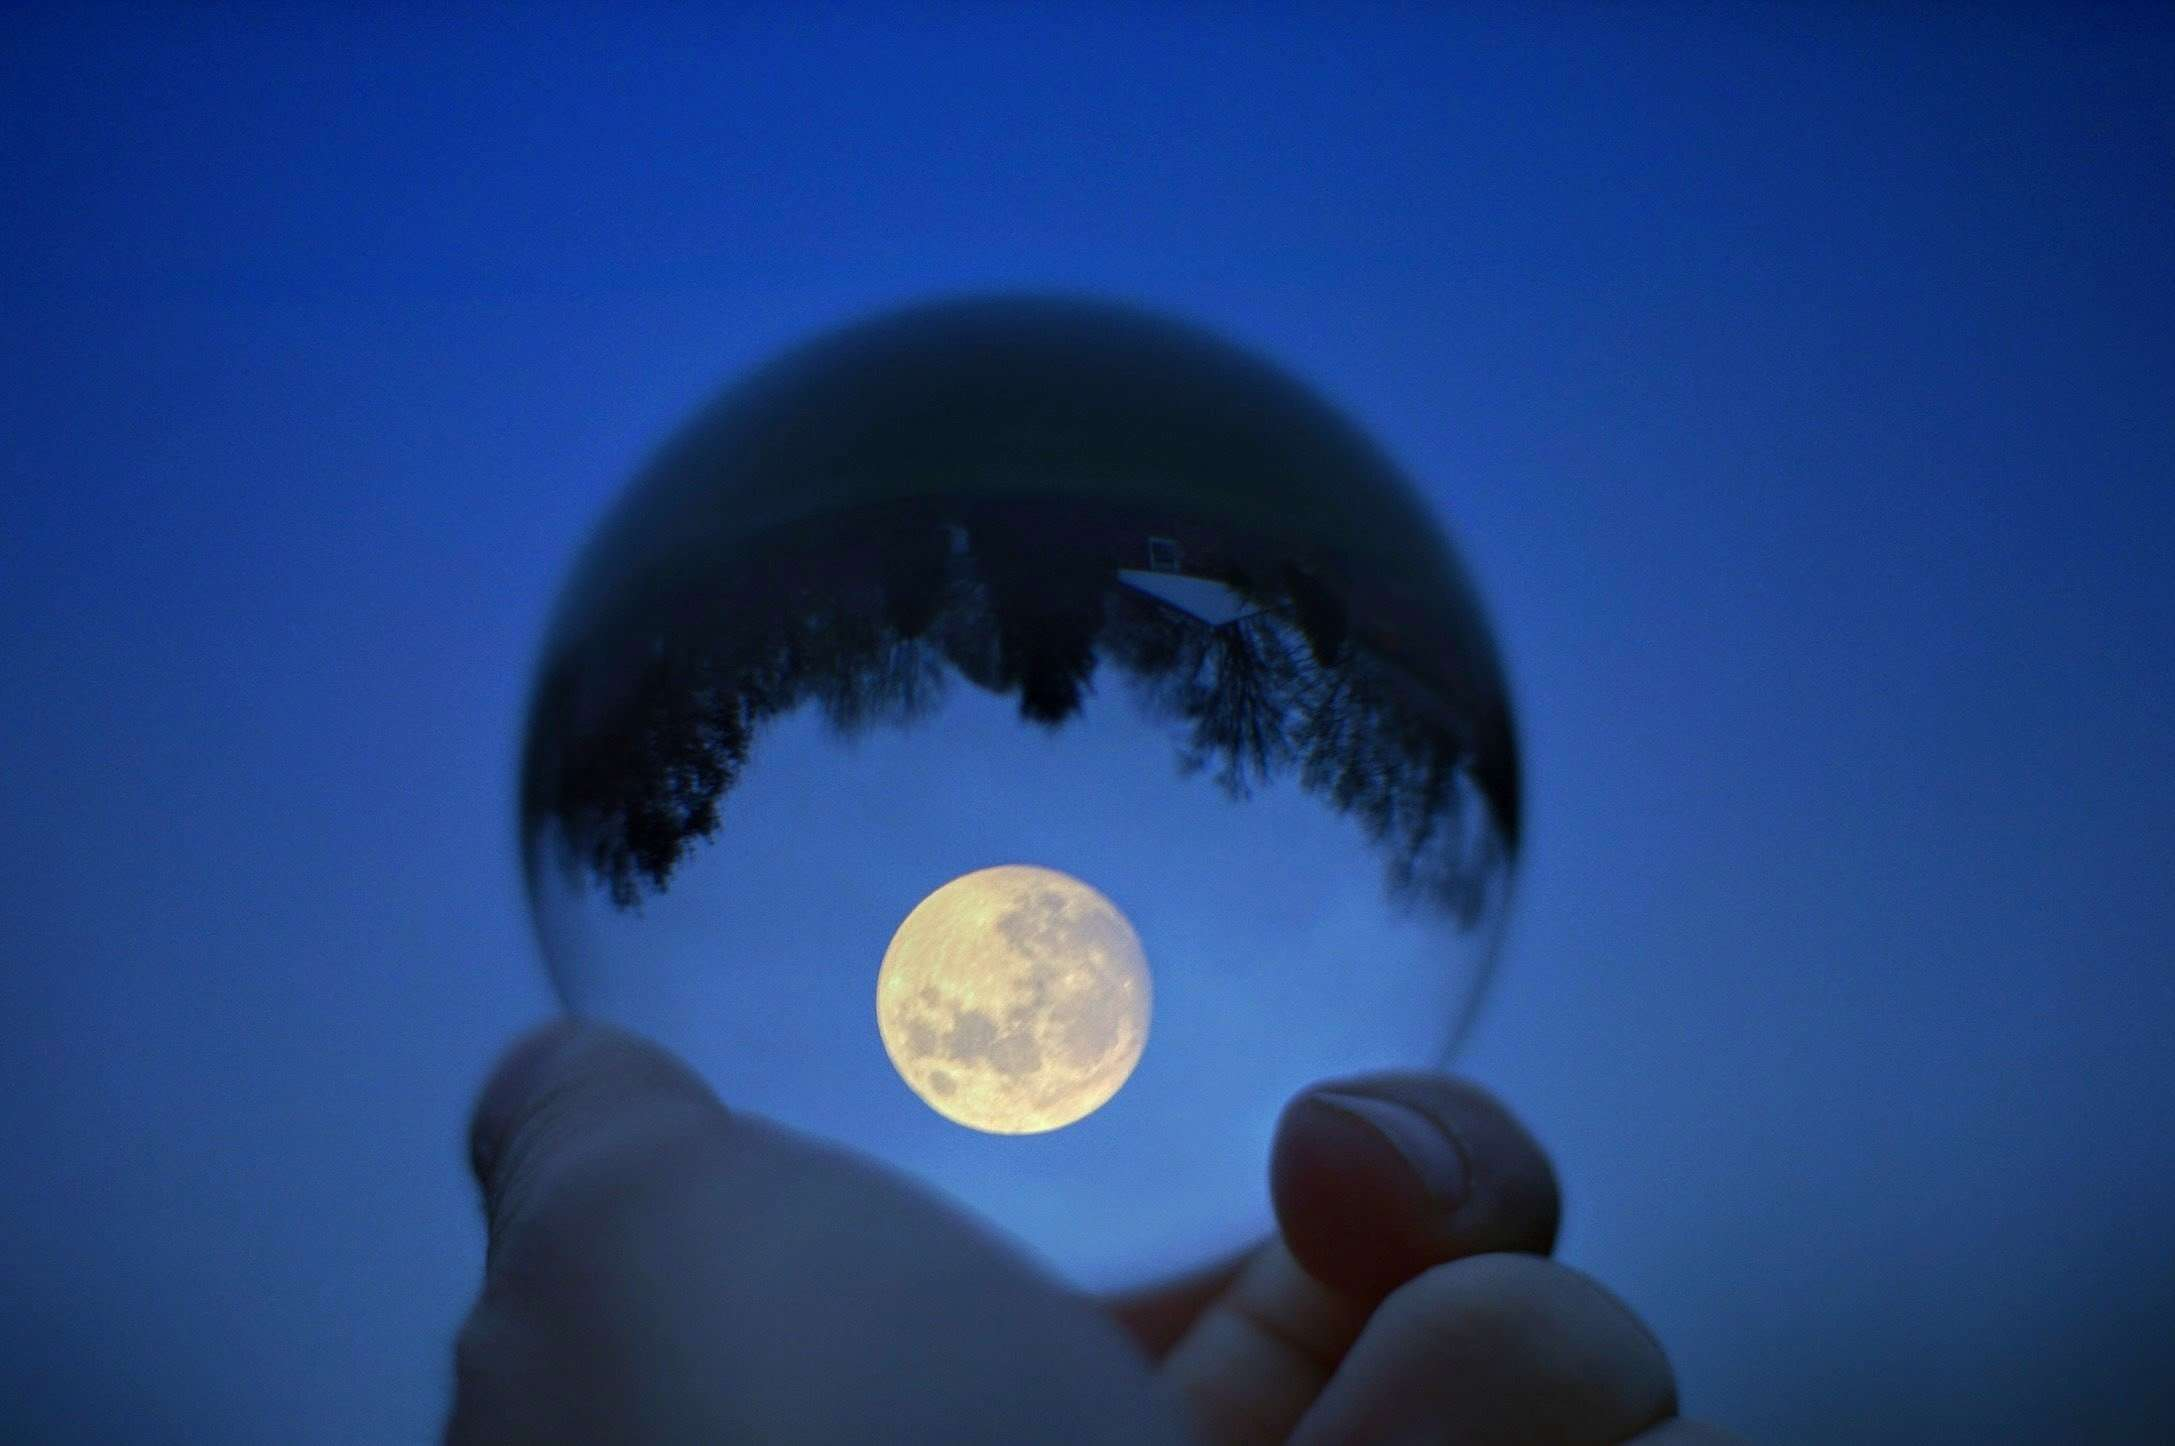 Close-Up Of Hand Holding Crystal Ball With Reflection Of Tree Against Moon In Blue Sky